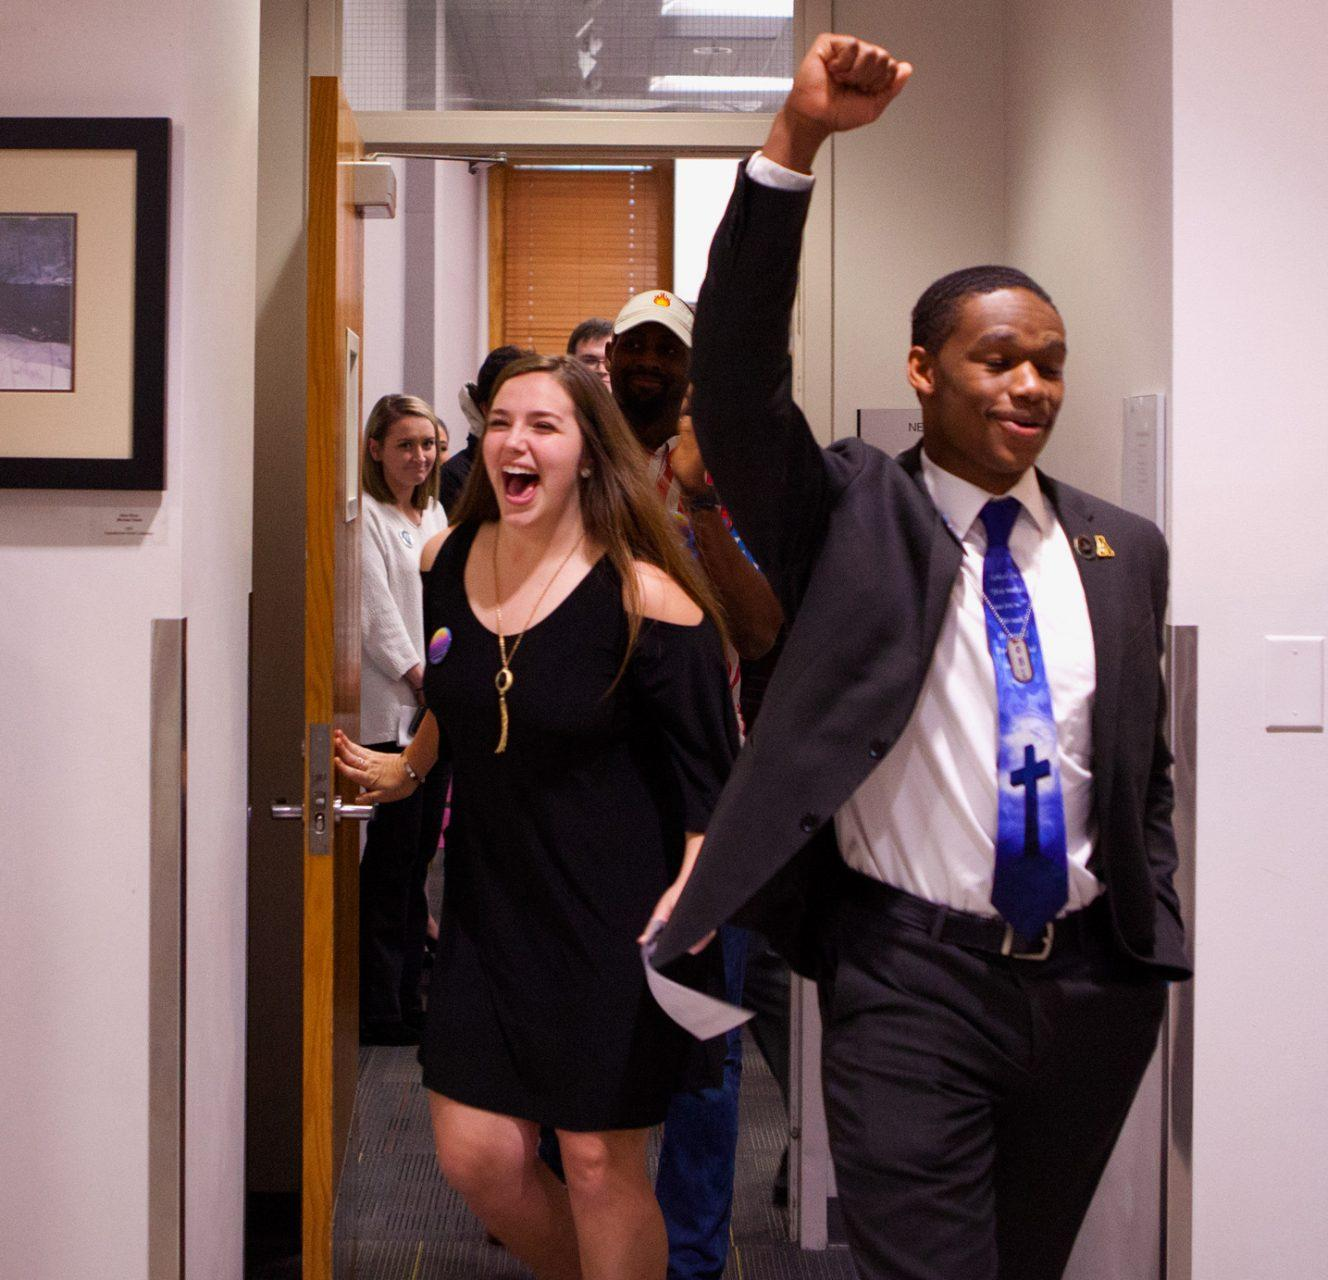 Milbourne/Kelly wins 2018 SGA Election